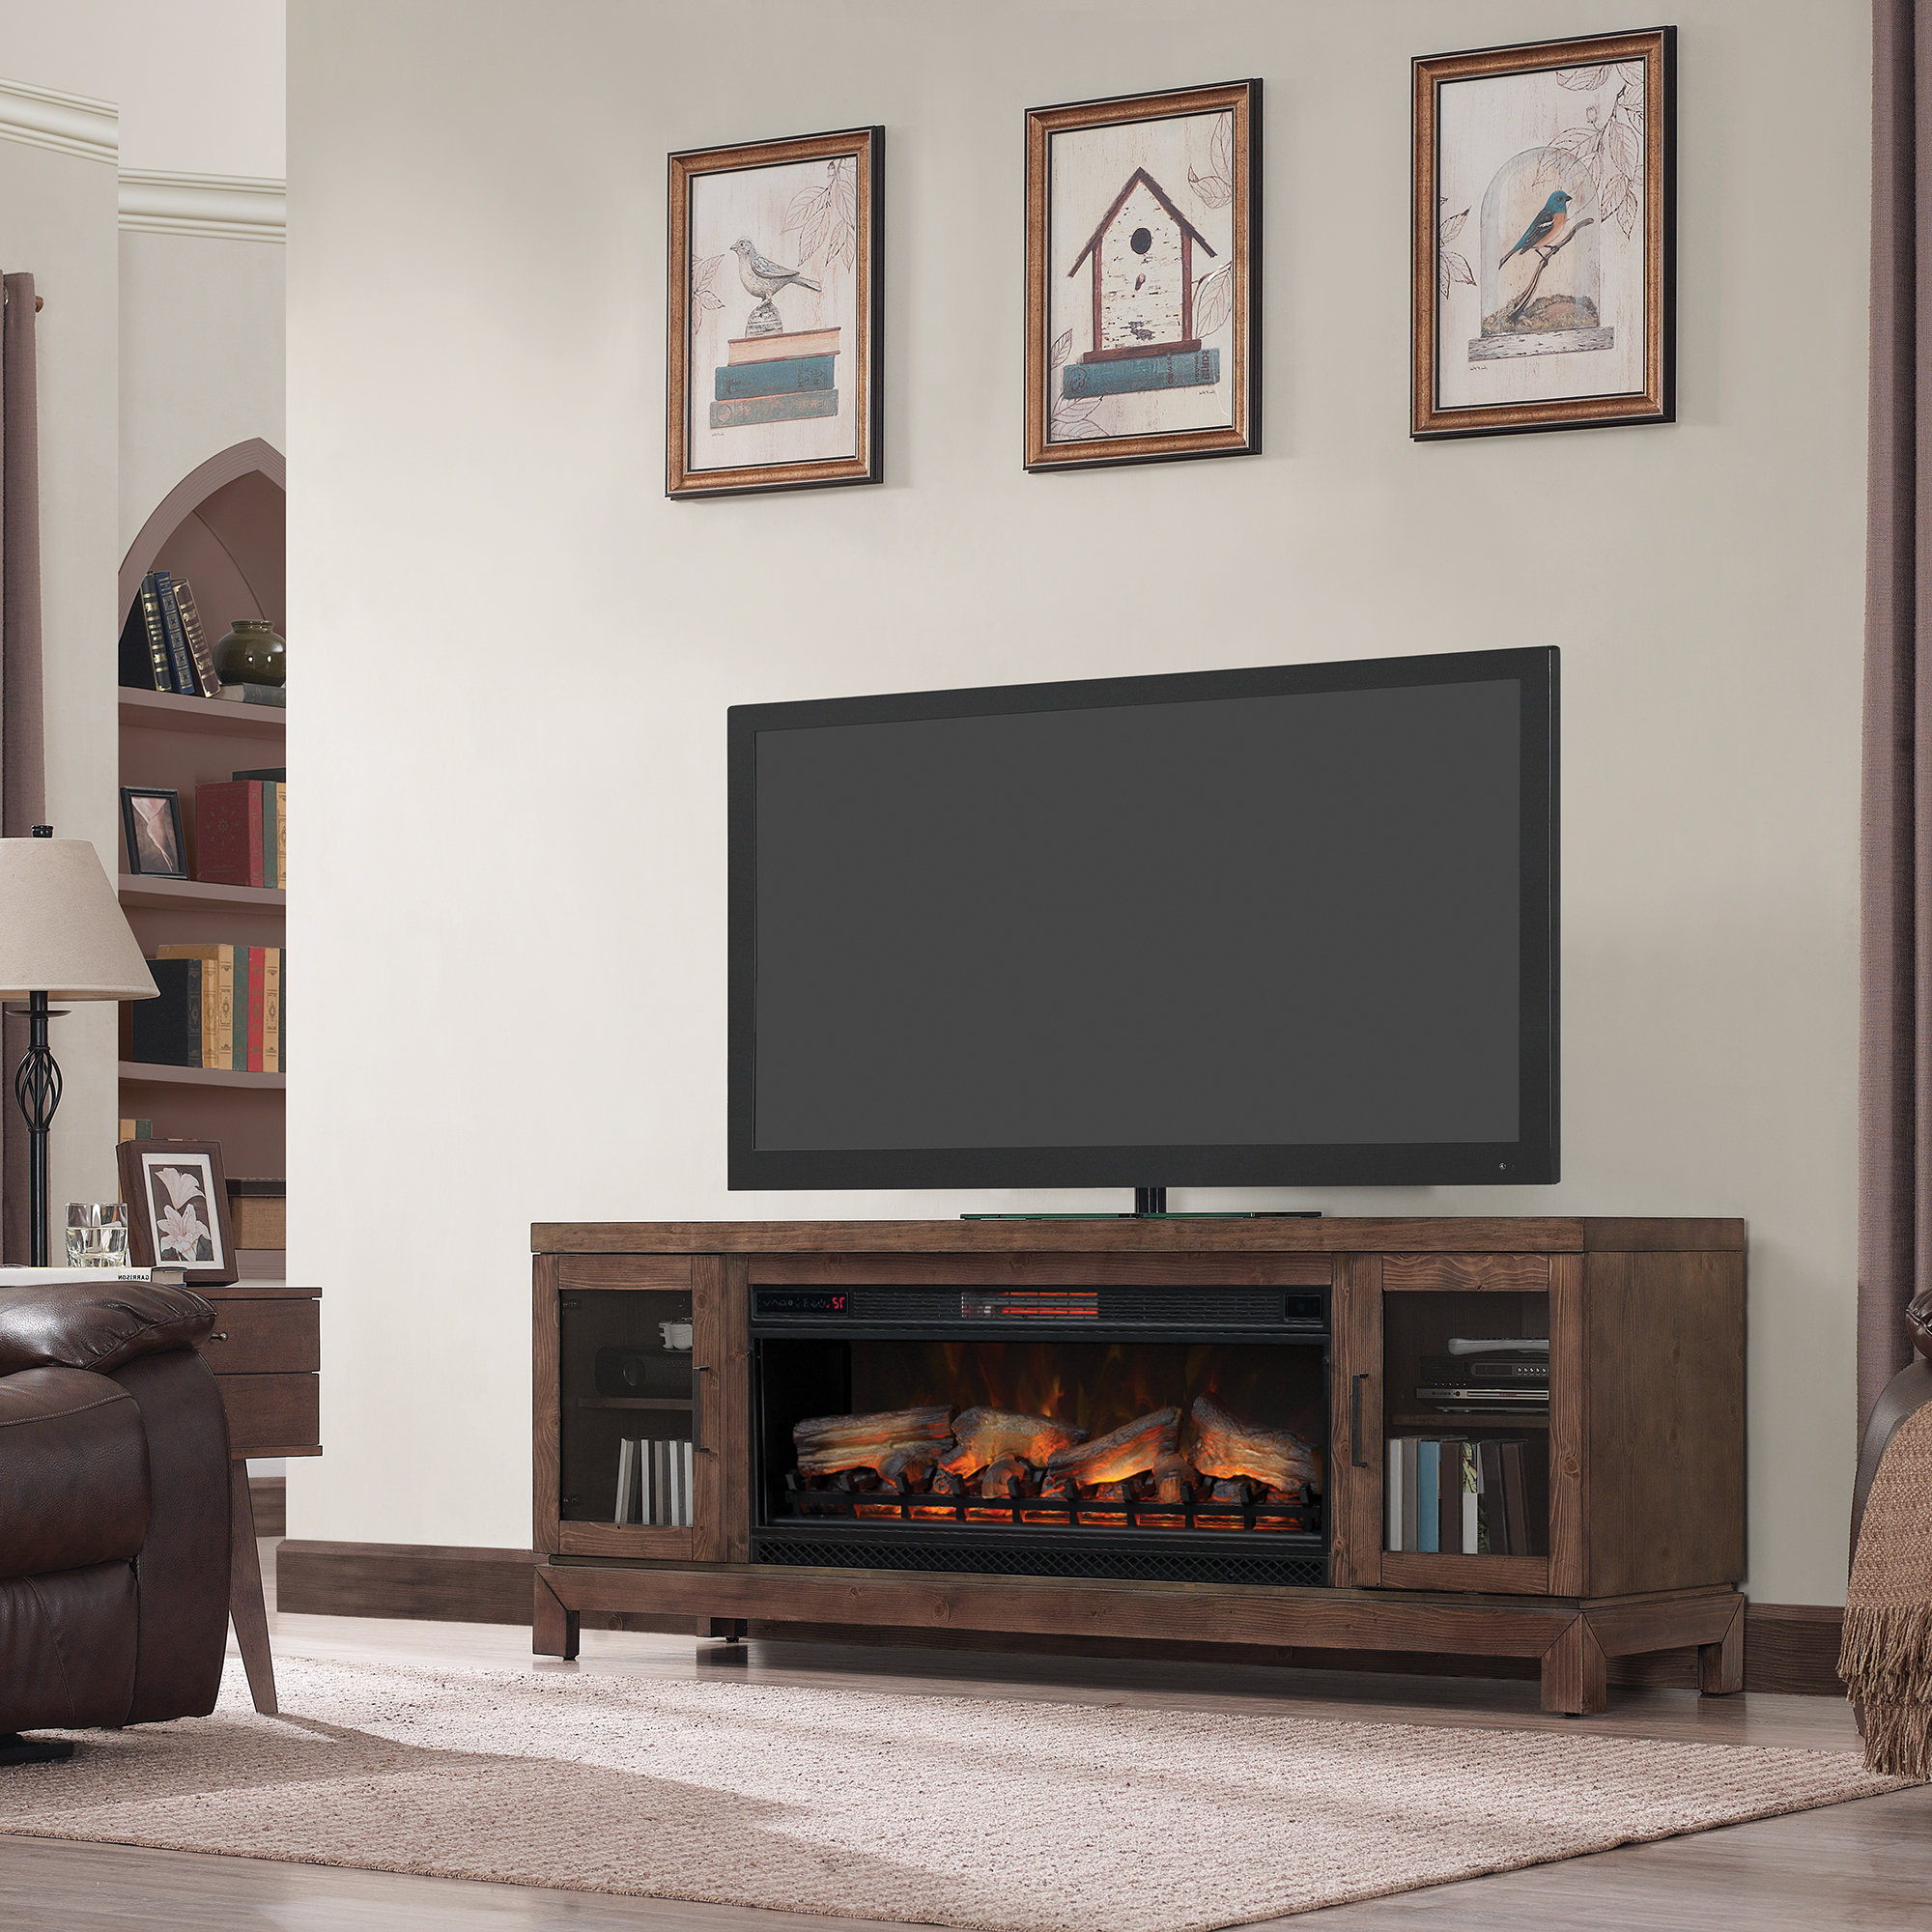 Rustic Tv Stand Fireplaces You'll Love | Wayfair (View 13 of 20)